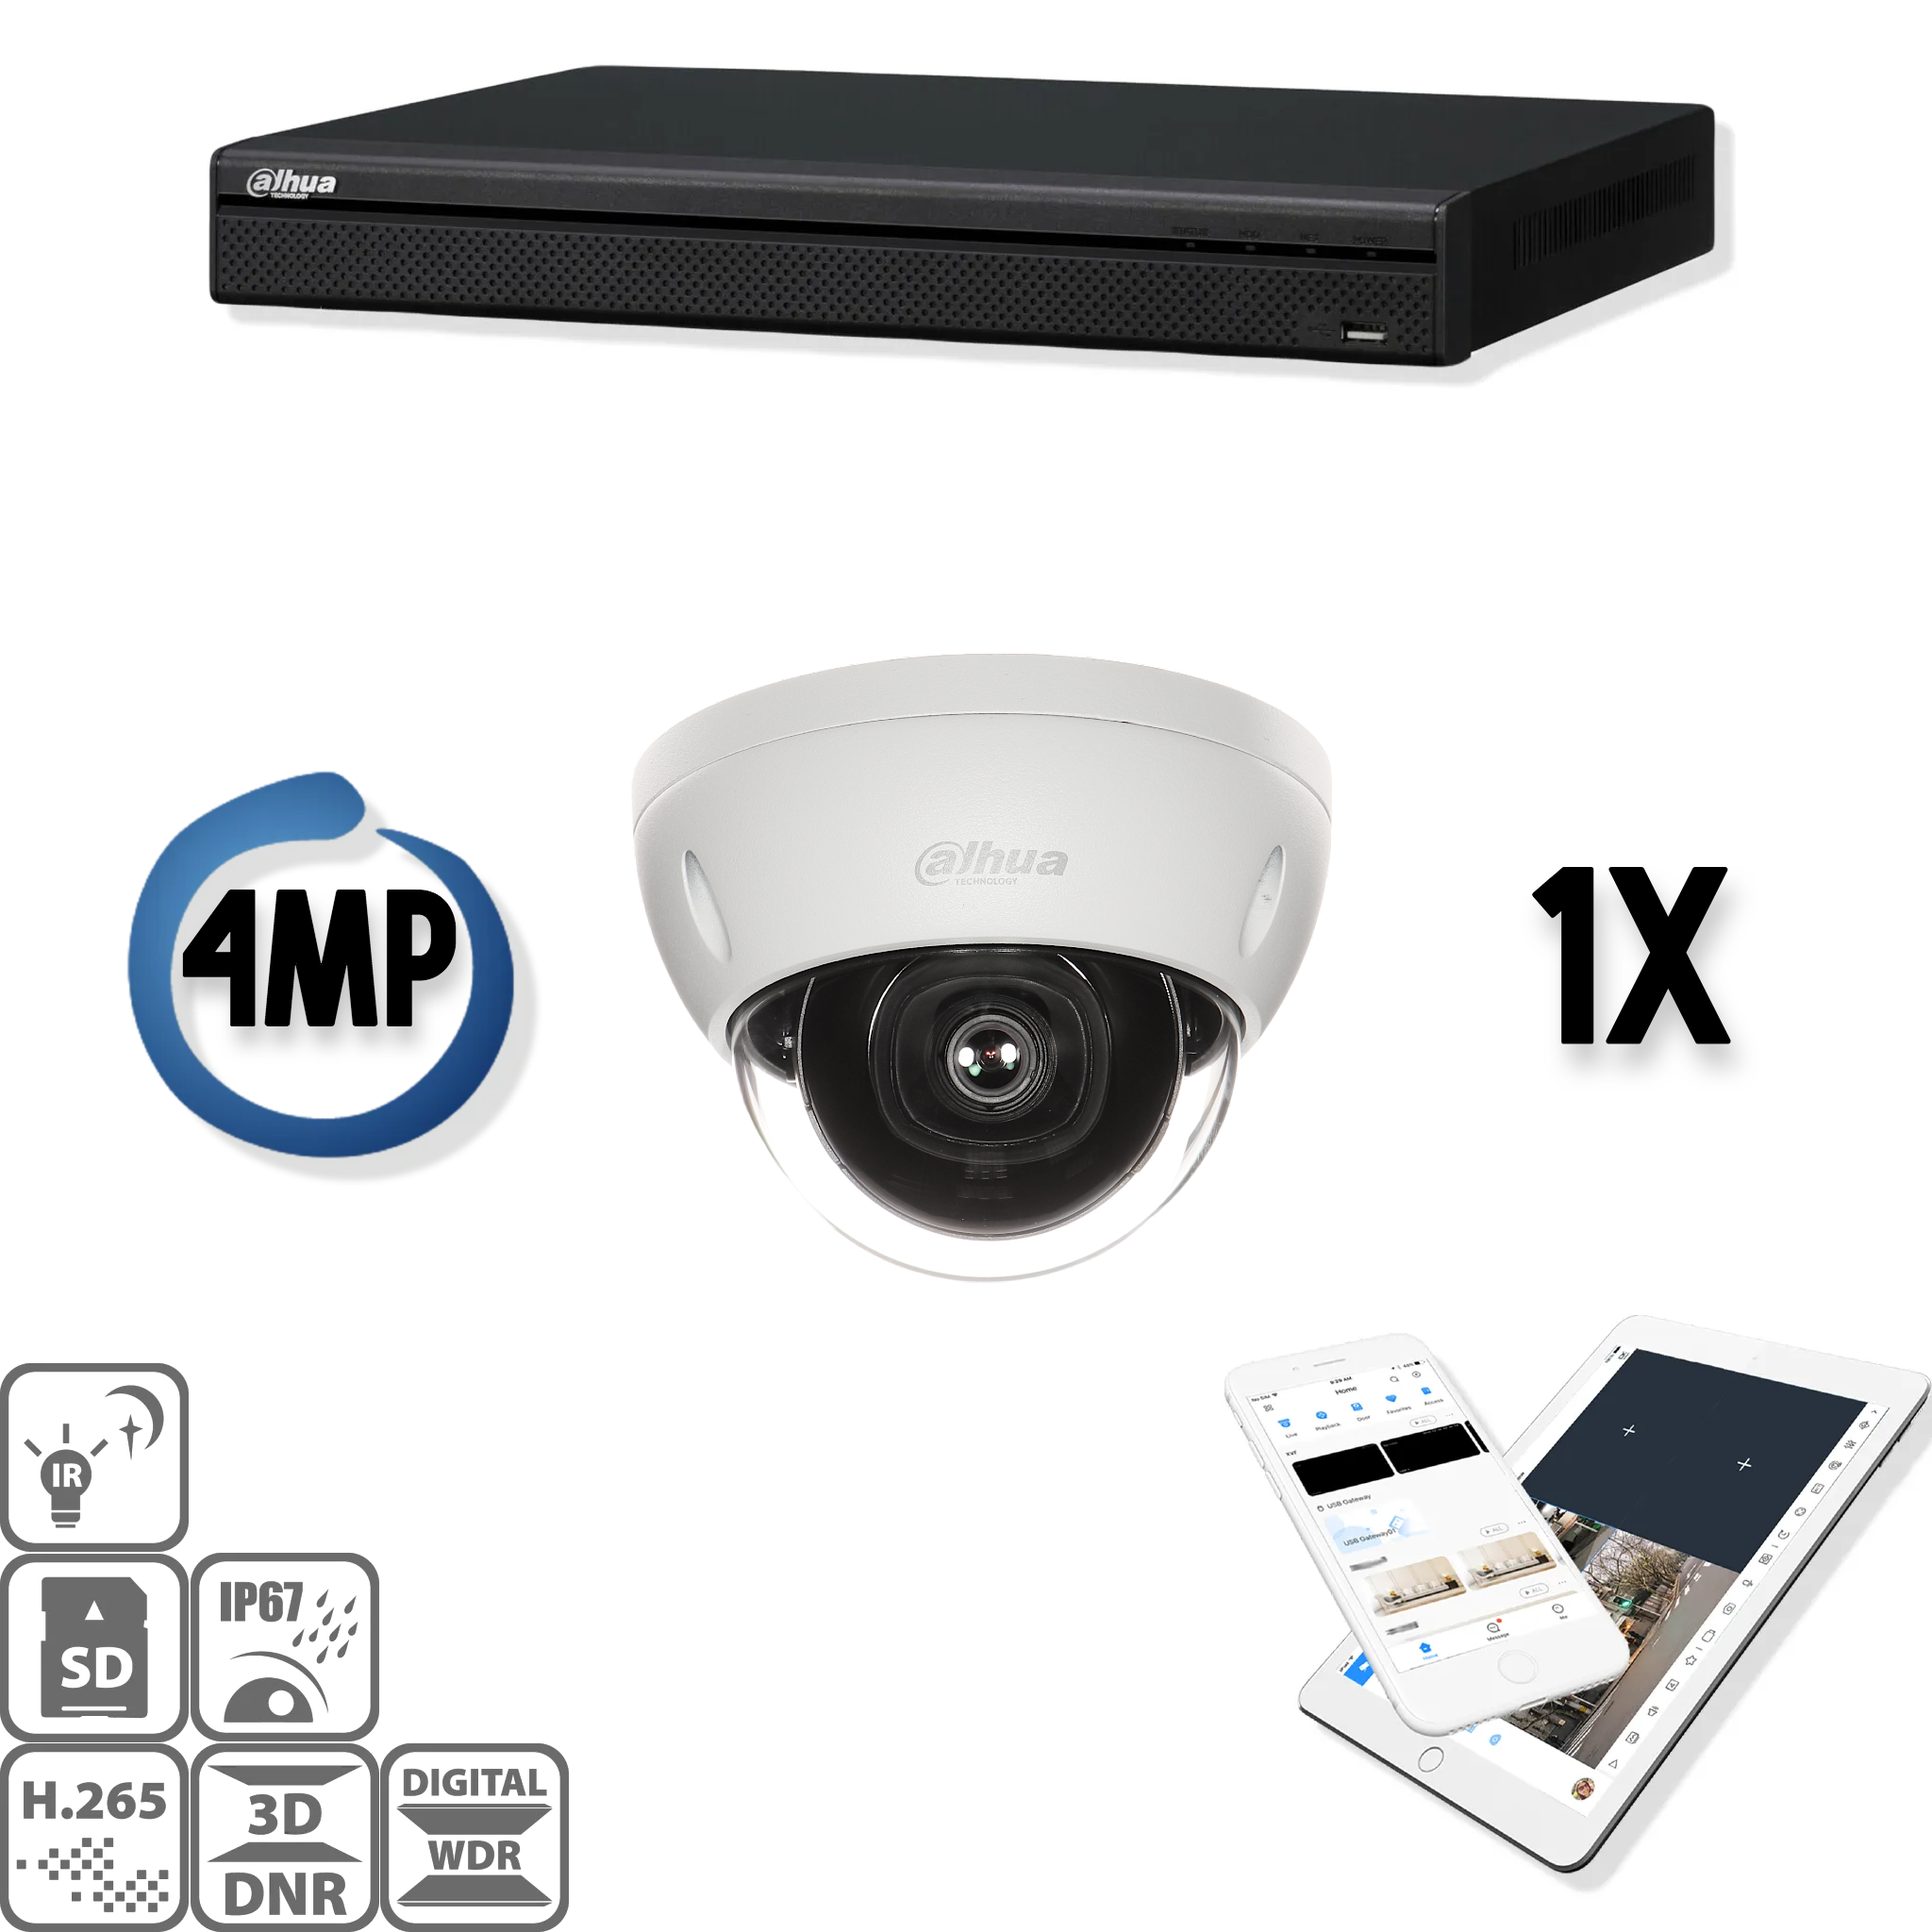 The Dahua IP kit 1x dome 4mp Full HD camera security set contains 1 IP dome camera, which are suitable for indoor or outdoor use. The camera has a Full HD image quality with IR LEDs for a perfect view in darkness. This HD IP camera set delivers razor-shar